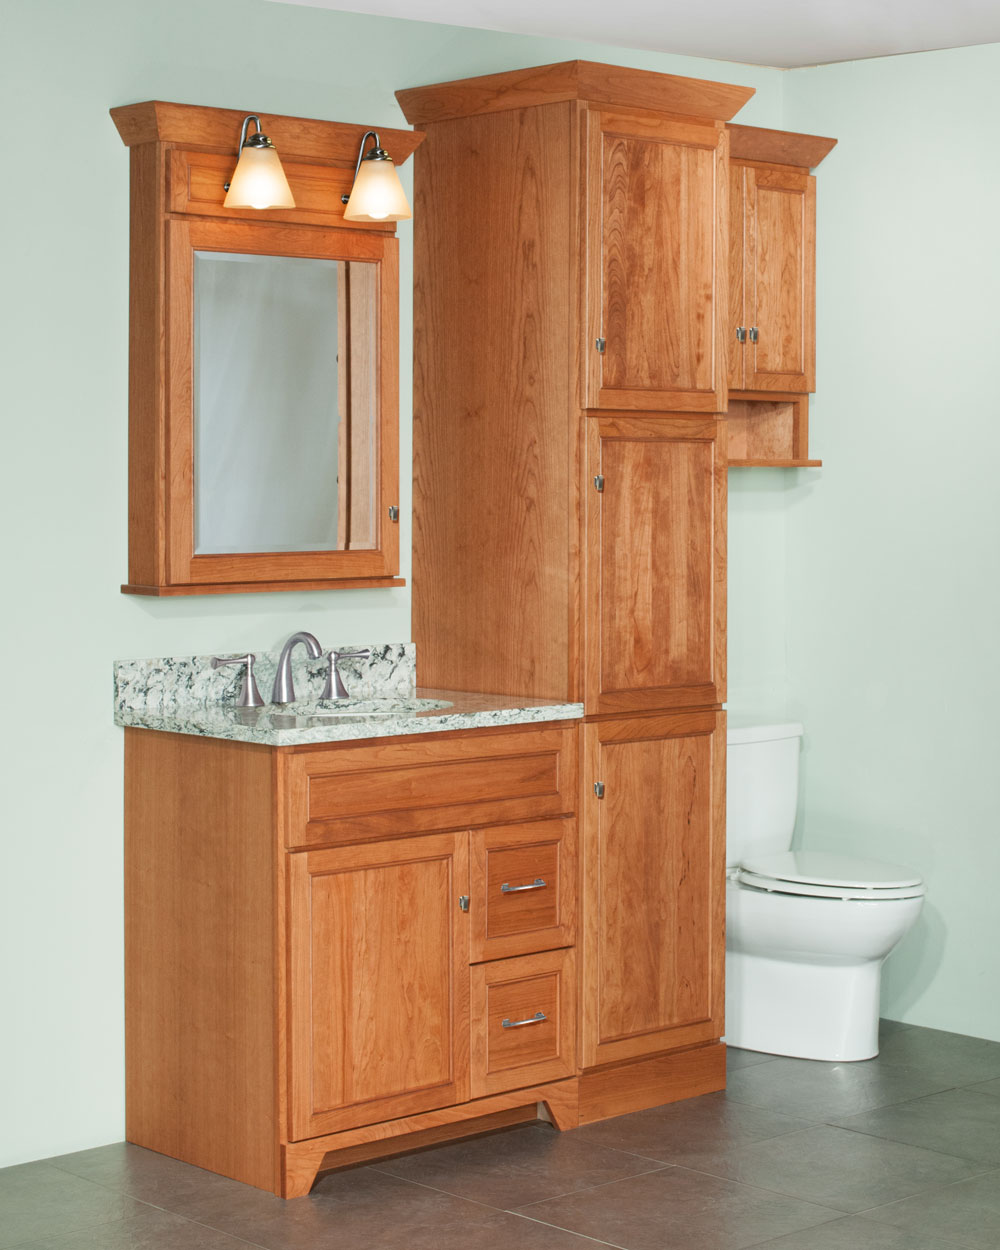 oak linen cabinet for bathrooms photo gallery 23866